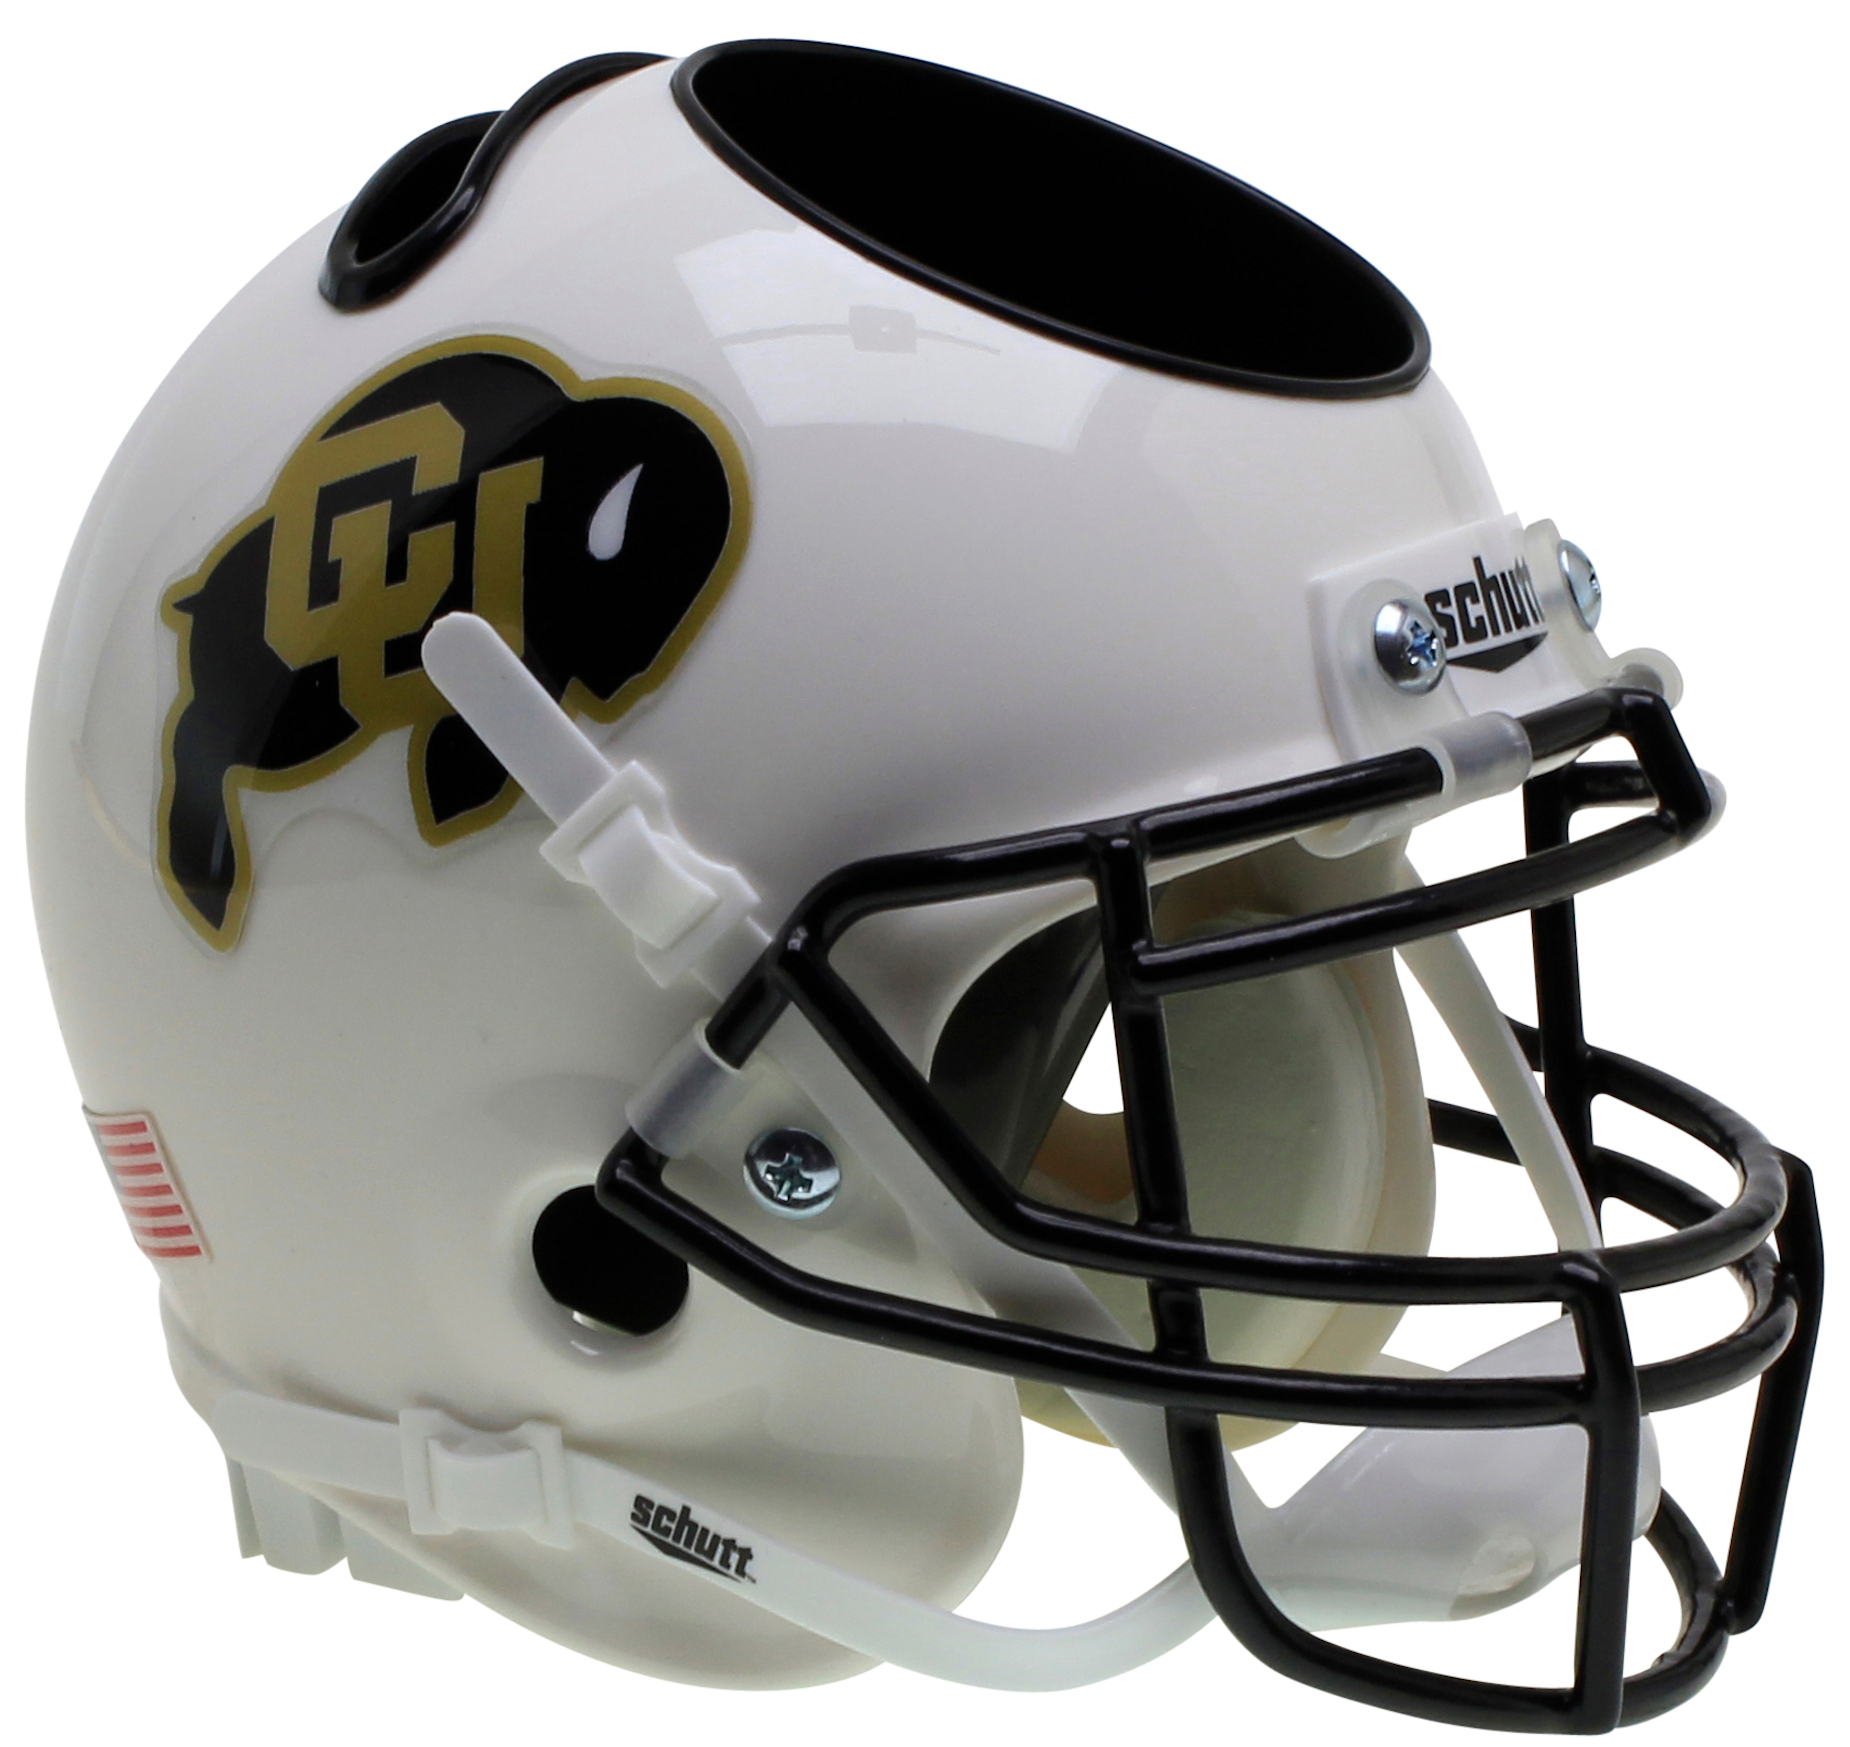 Colorado Buffaloes Miniature Football Helmet Desk Caddy <B>White</B>